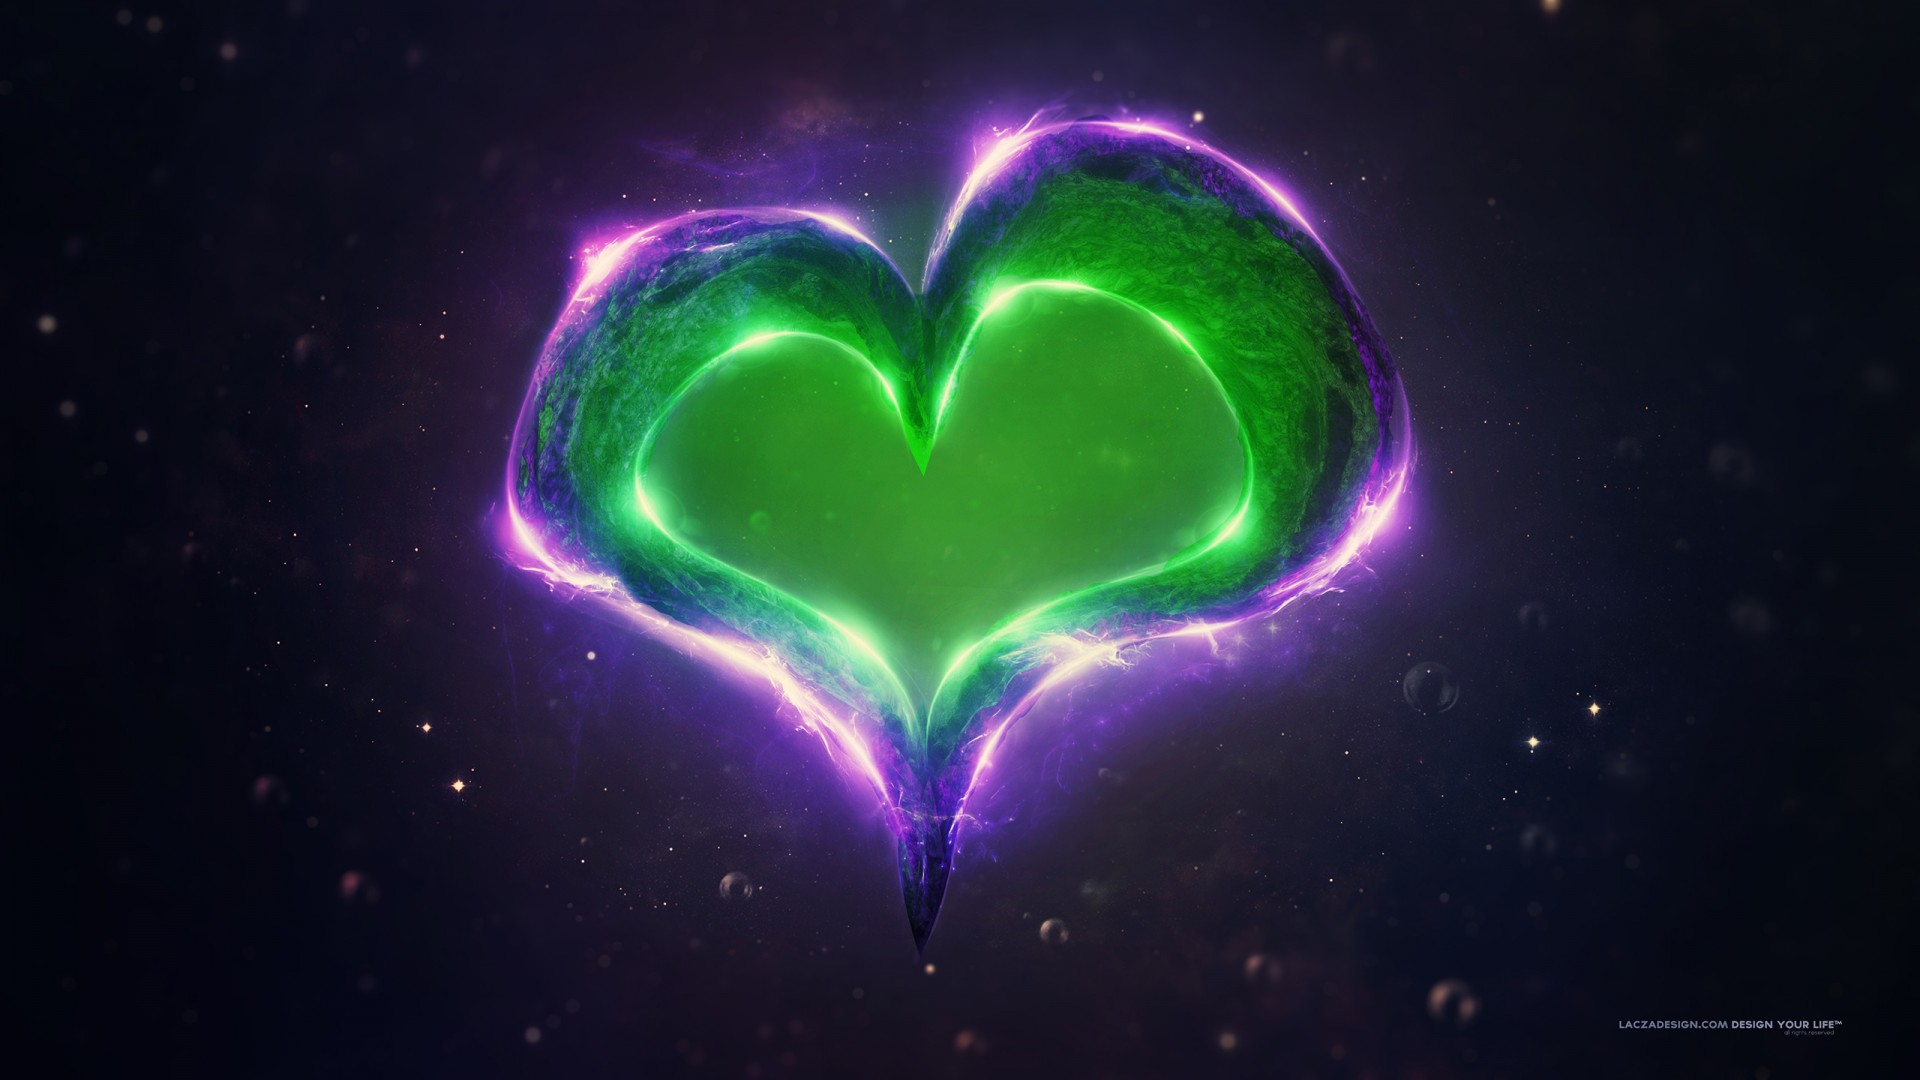 Cool Neon Cars Wallpapers Green Purple Love Heart Wallpapers Hd Wallpapers Id 18489